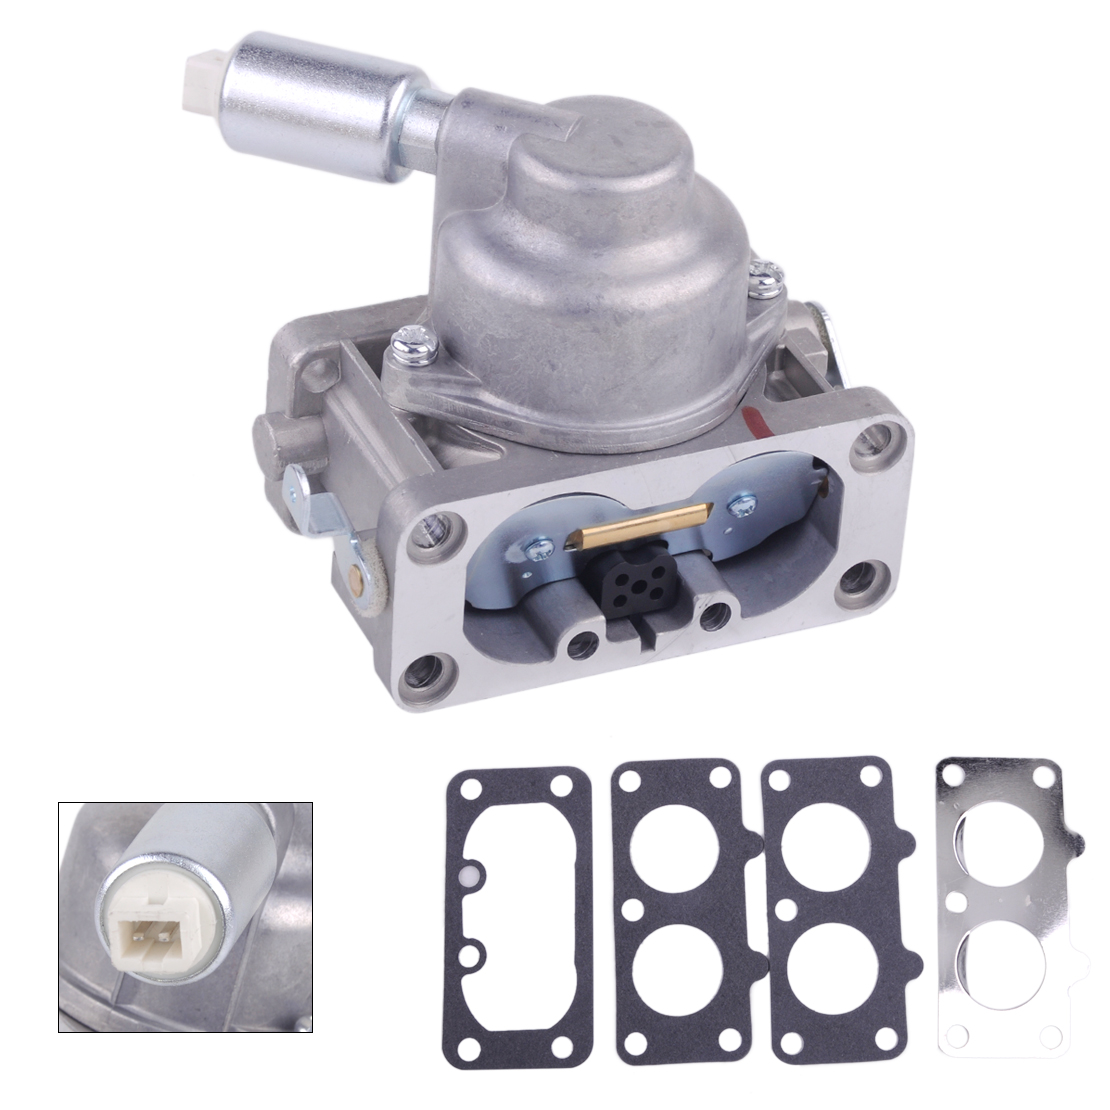 LETAOSK Carburetor Carb with Gasket fit for Briggs & Stratton 792295 Replacement купить недорого в Москве